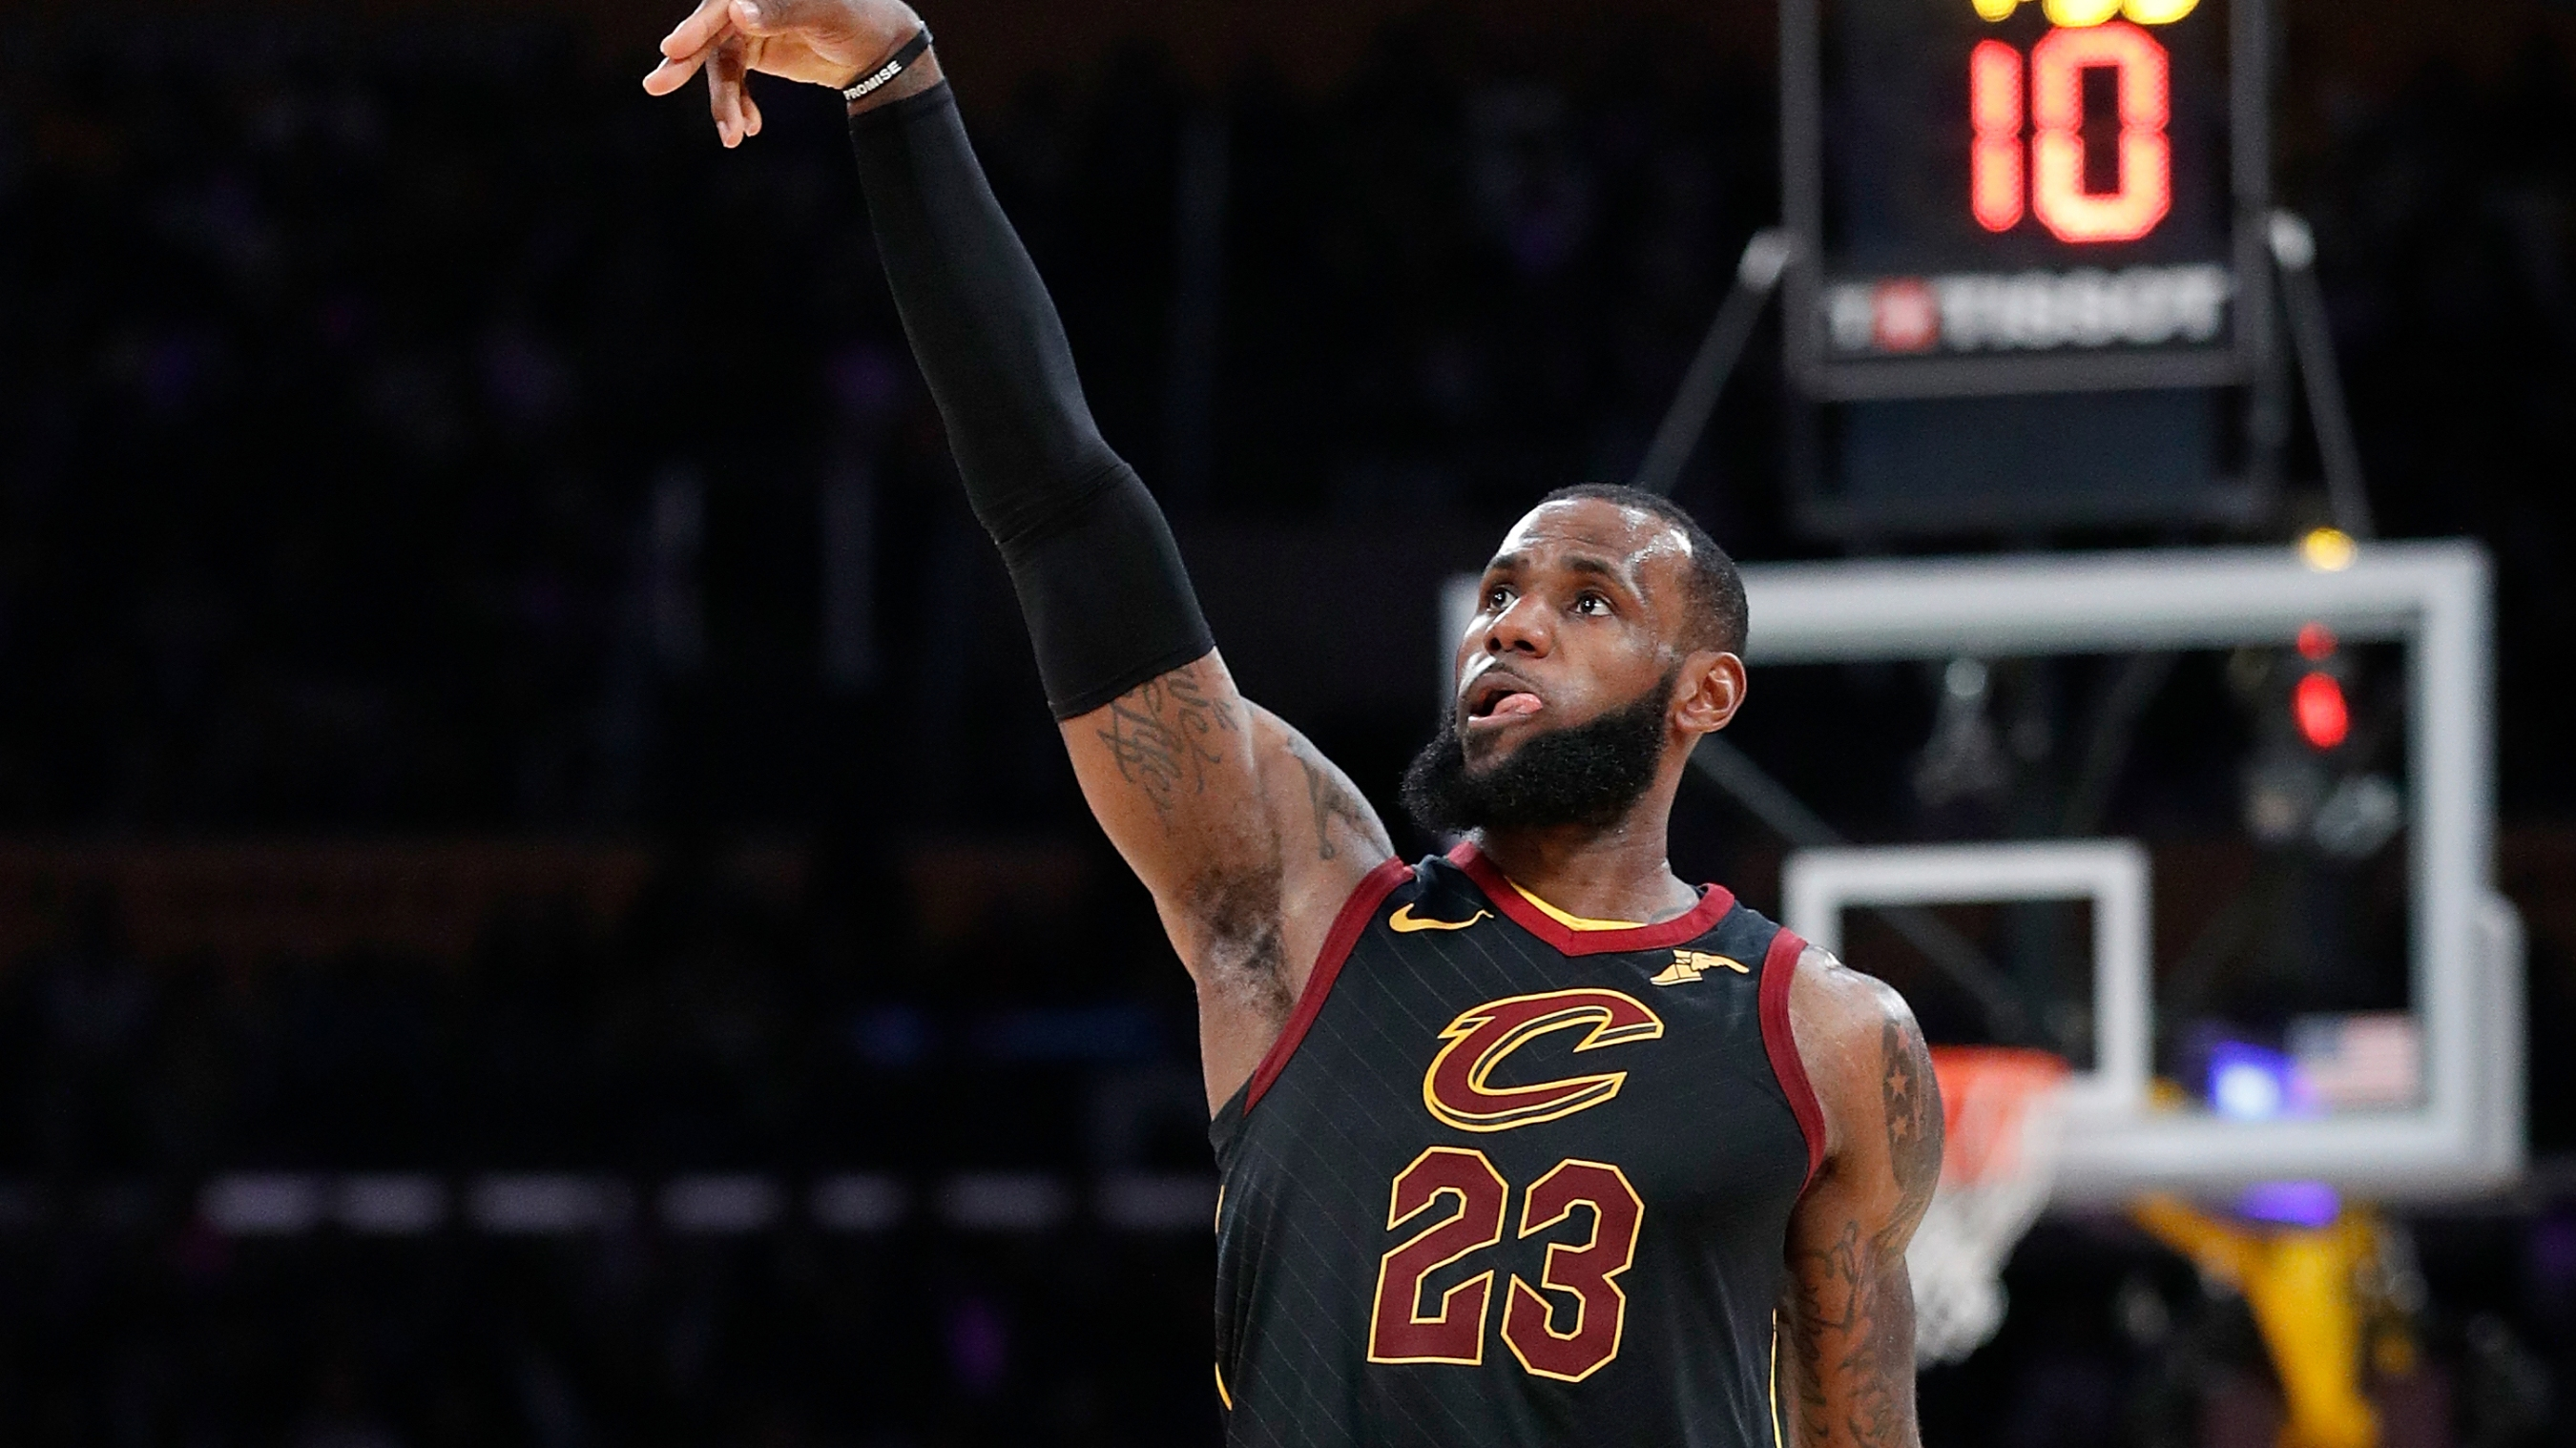 73ad020764d LeBron visits Los Angeles and courtside is as interesting to watch as the  game itself